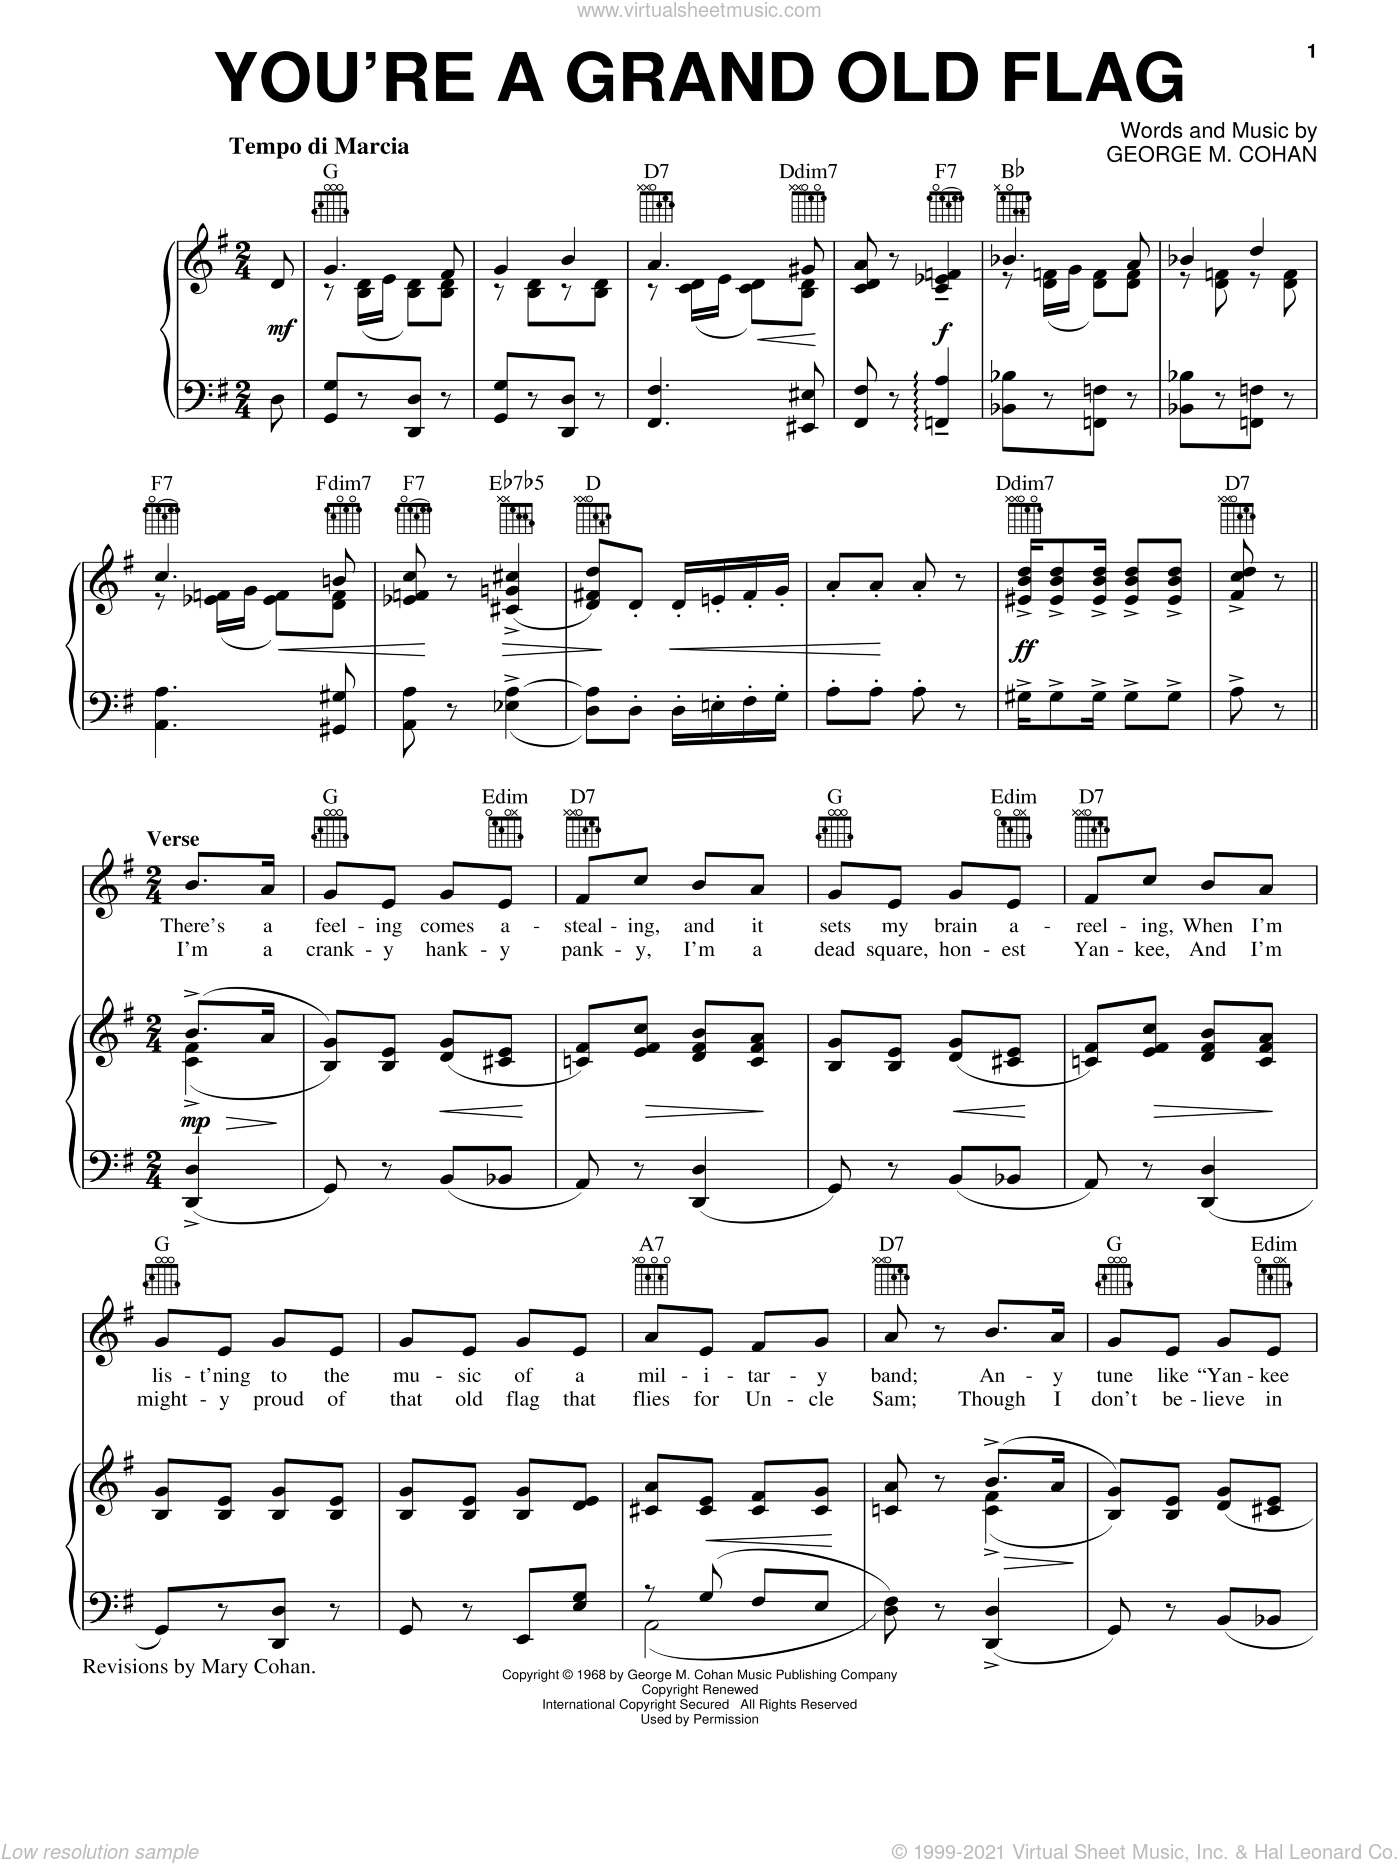 You're A Grand Old Flag sheet music for voice, piano or guitar by George Cohan, intermediate skill level